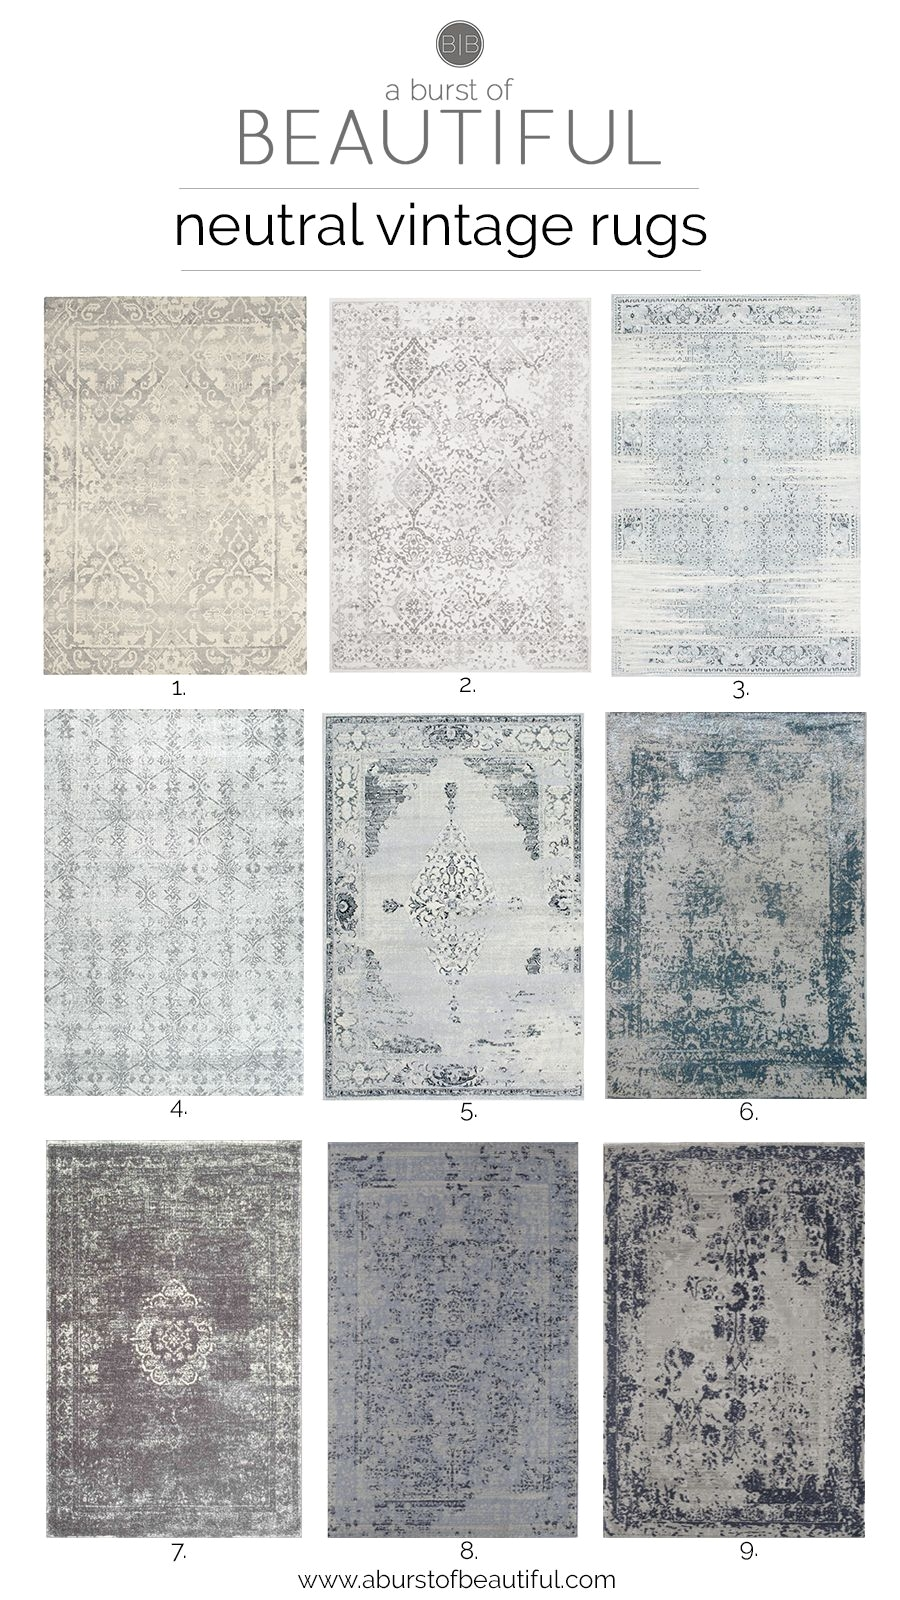 neutral vintage area rugs are an easy way to add color texture and pattern to any space in your home